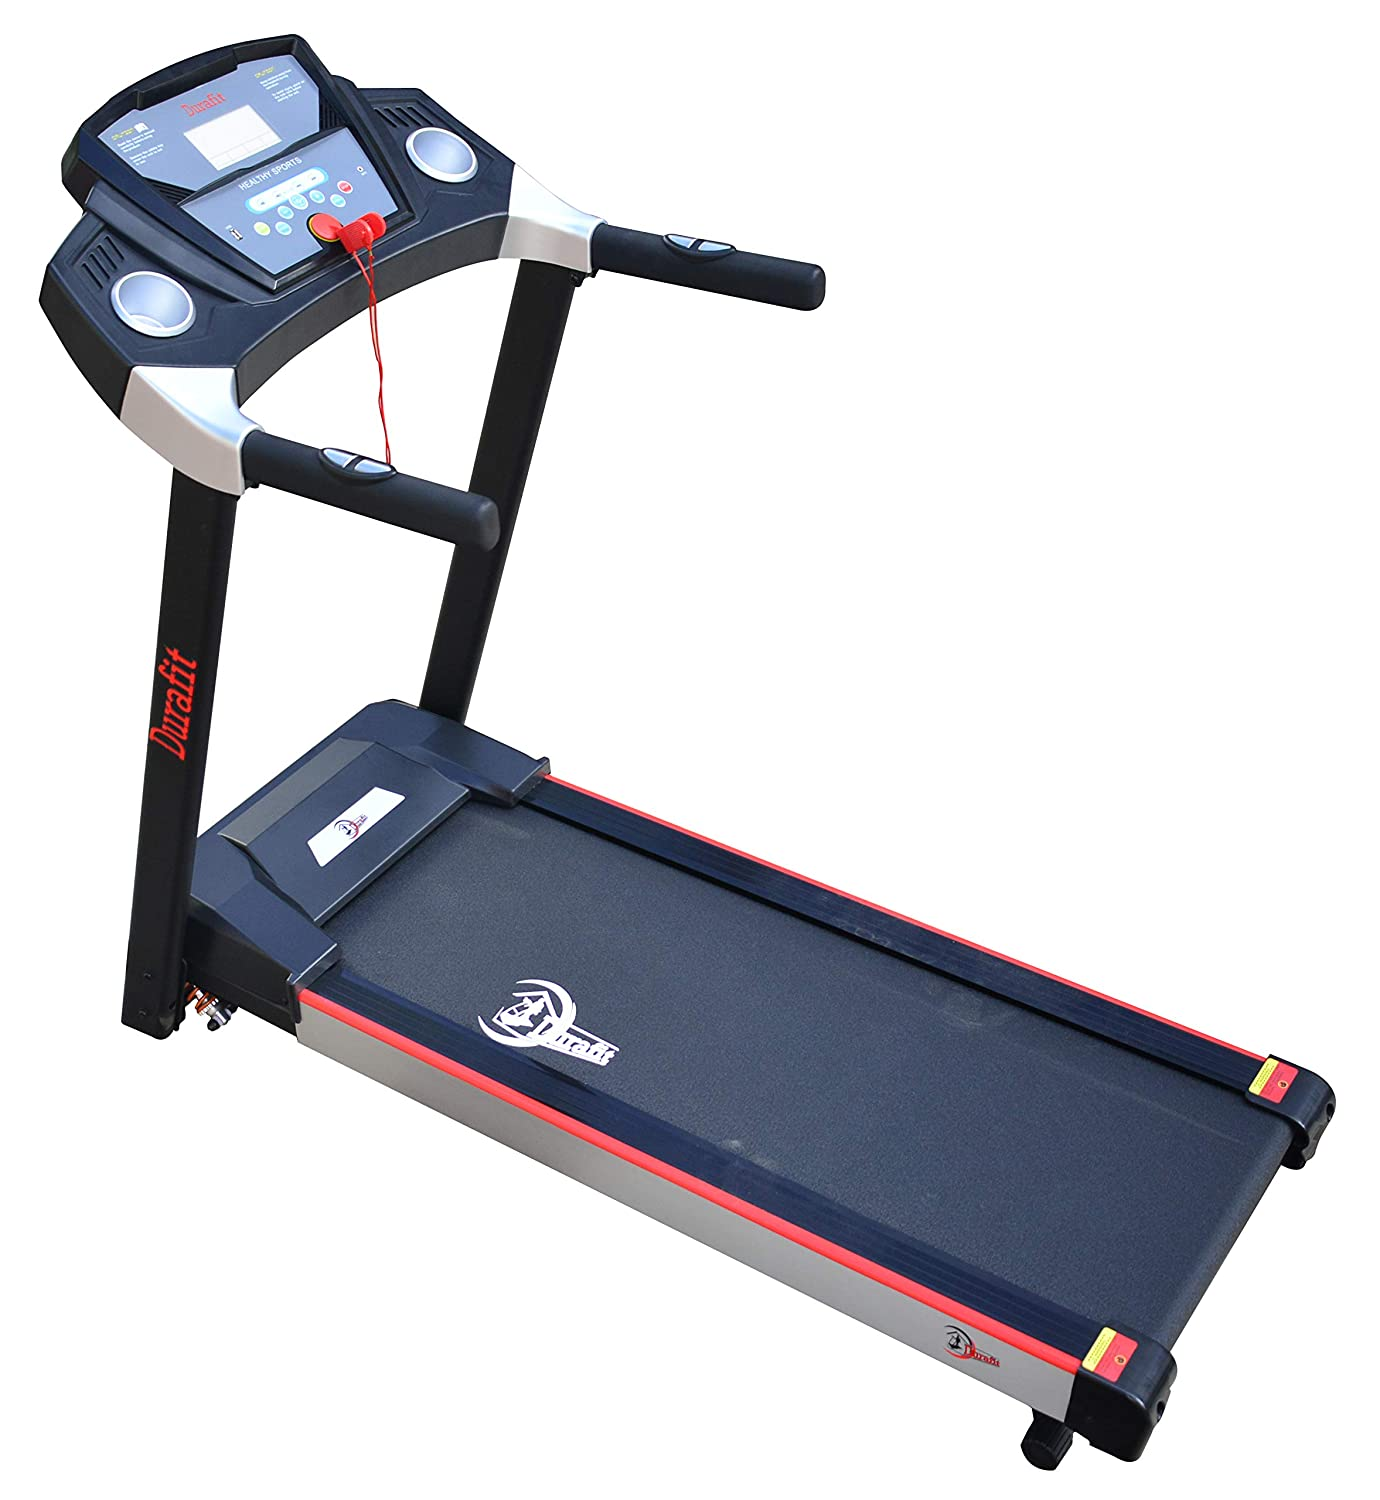 Durafit - Sturdy, Stable And Strong Serene 1.5 HP Continuous